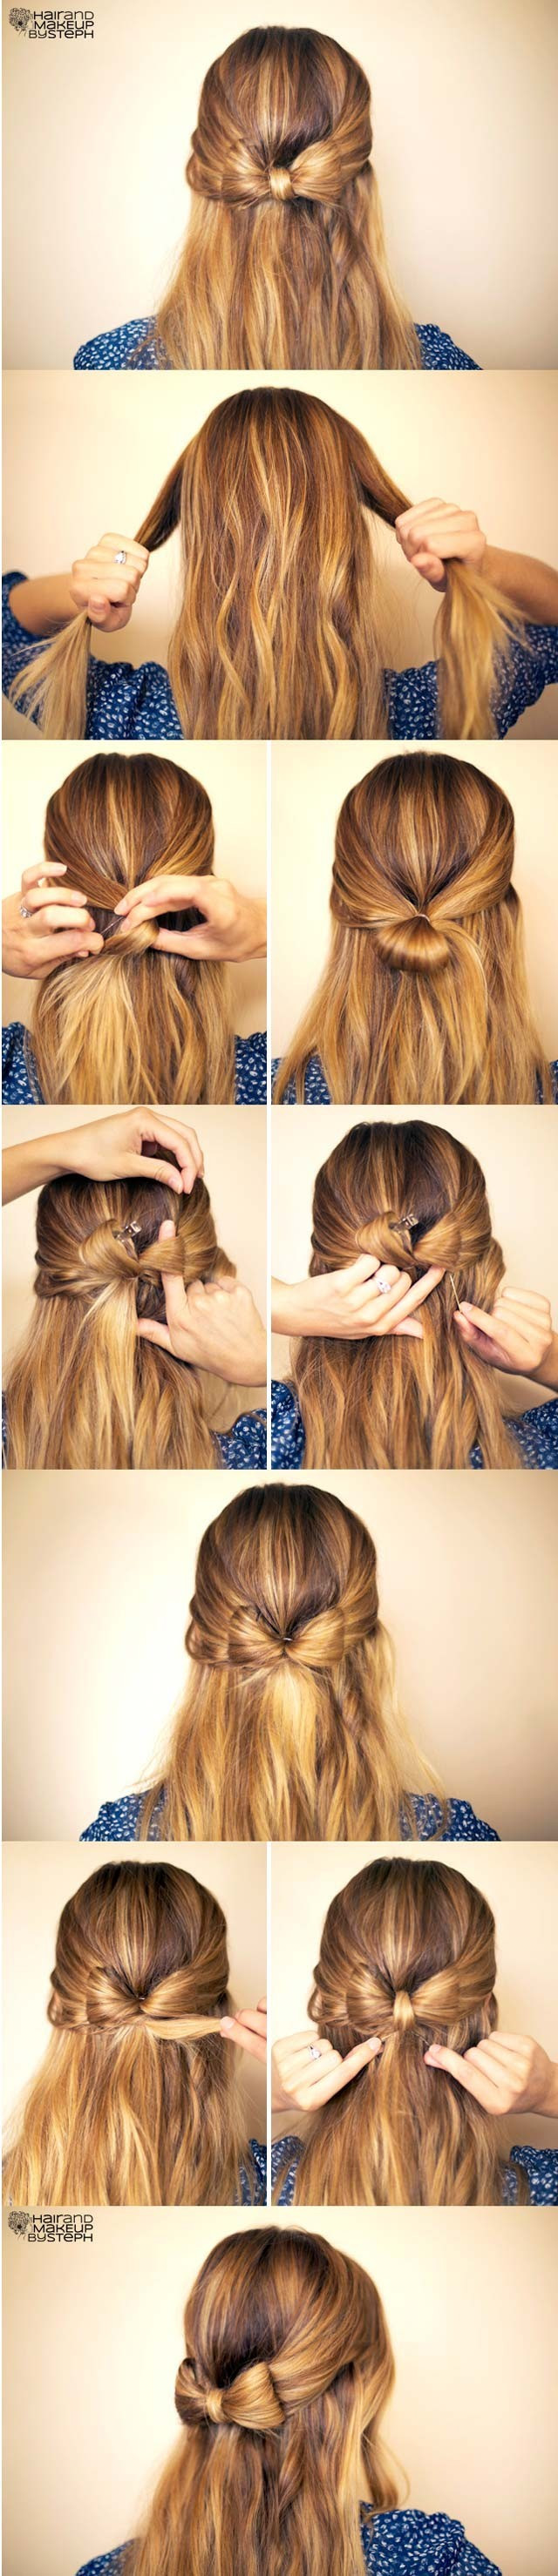 Best ideas about Easy But Cute Hairstyles . Save or Pin 15 Cute hairstyles Step by Step Hairstyles for Long Hair Now.